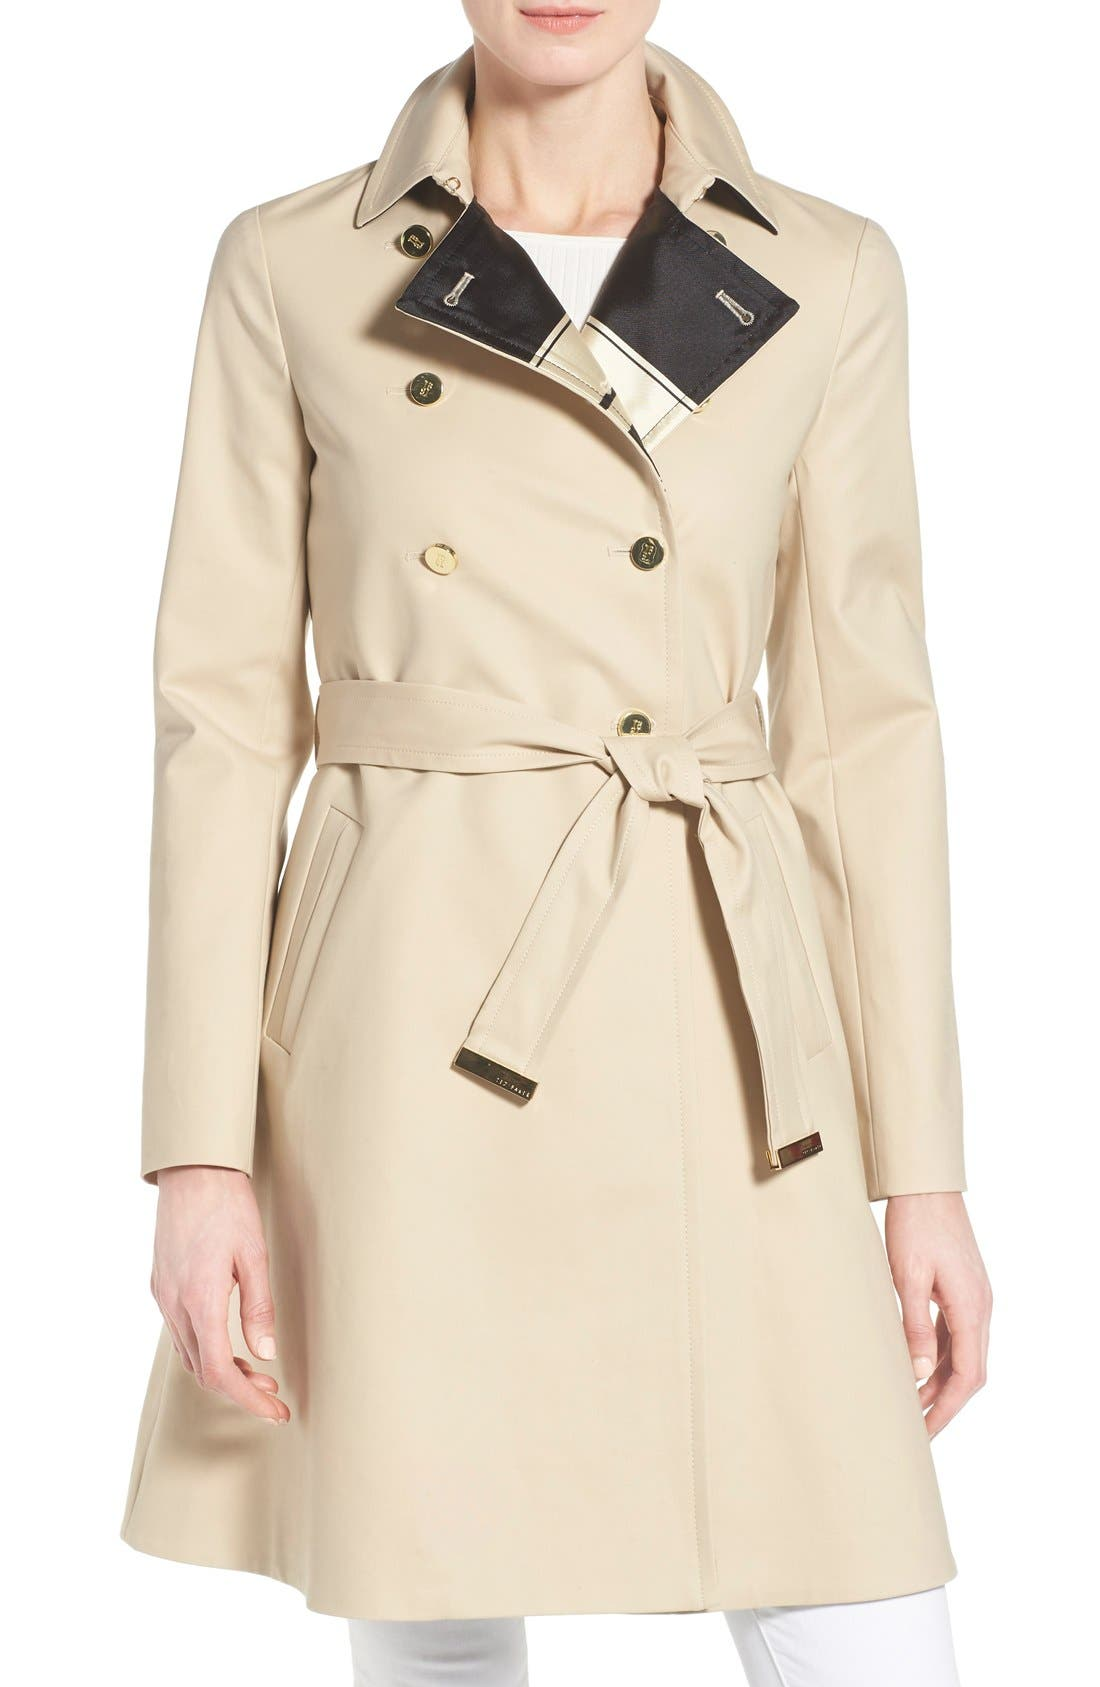 Alternate Image 1 Selected - Ted Baker London Belted A-Line Macintosh Coat